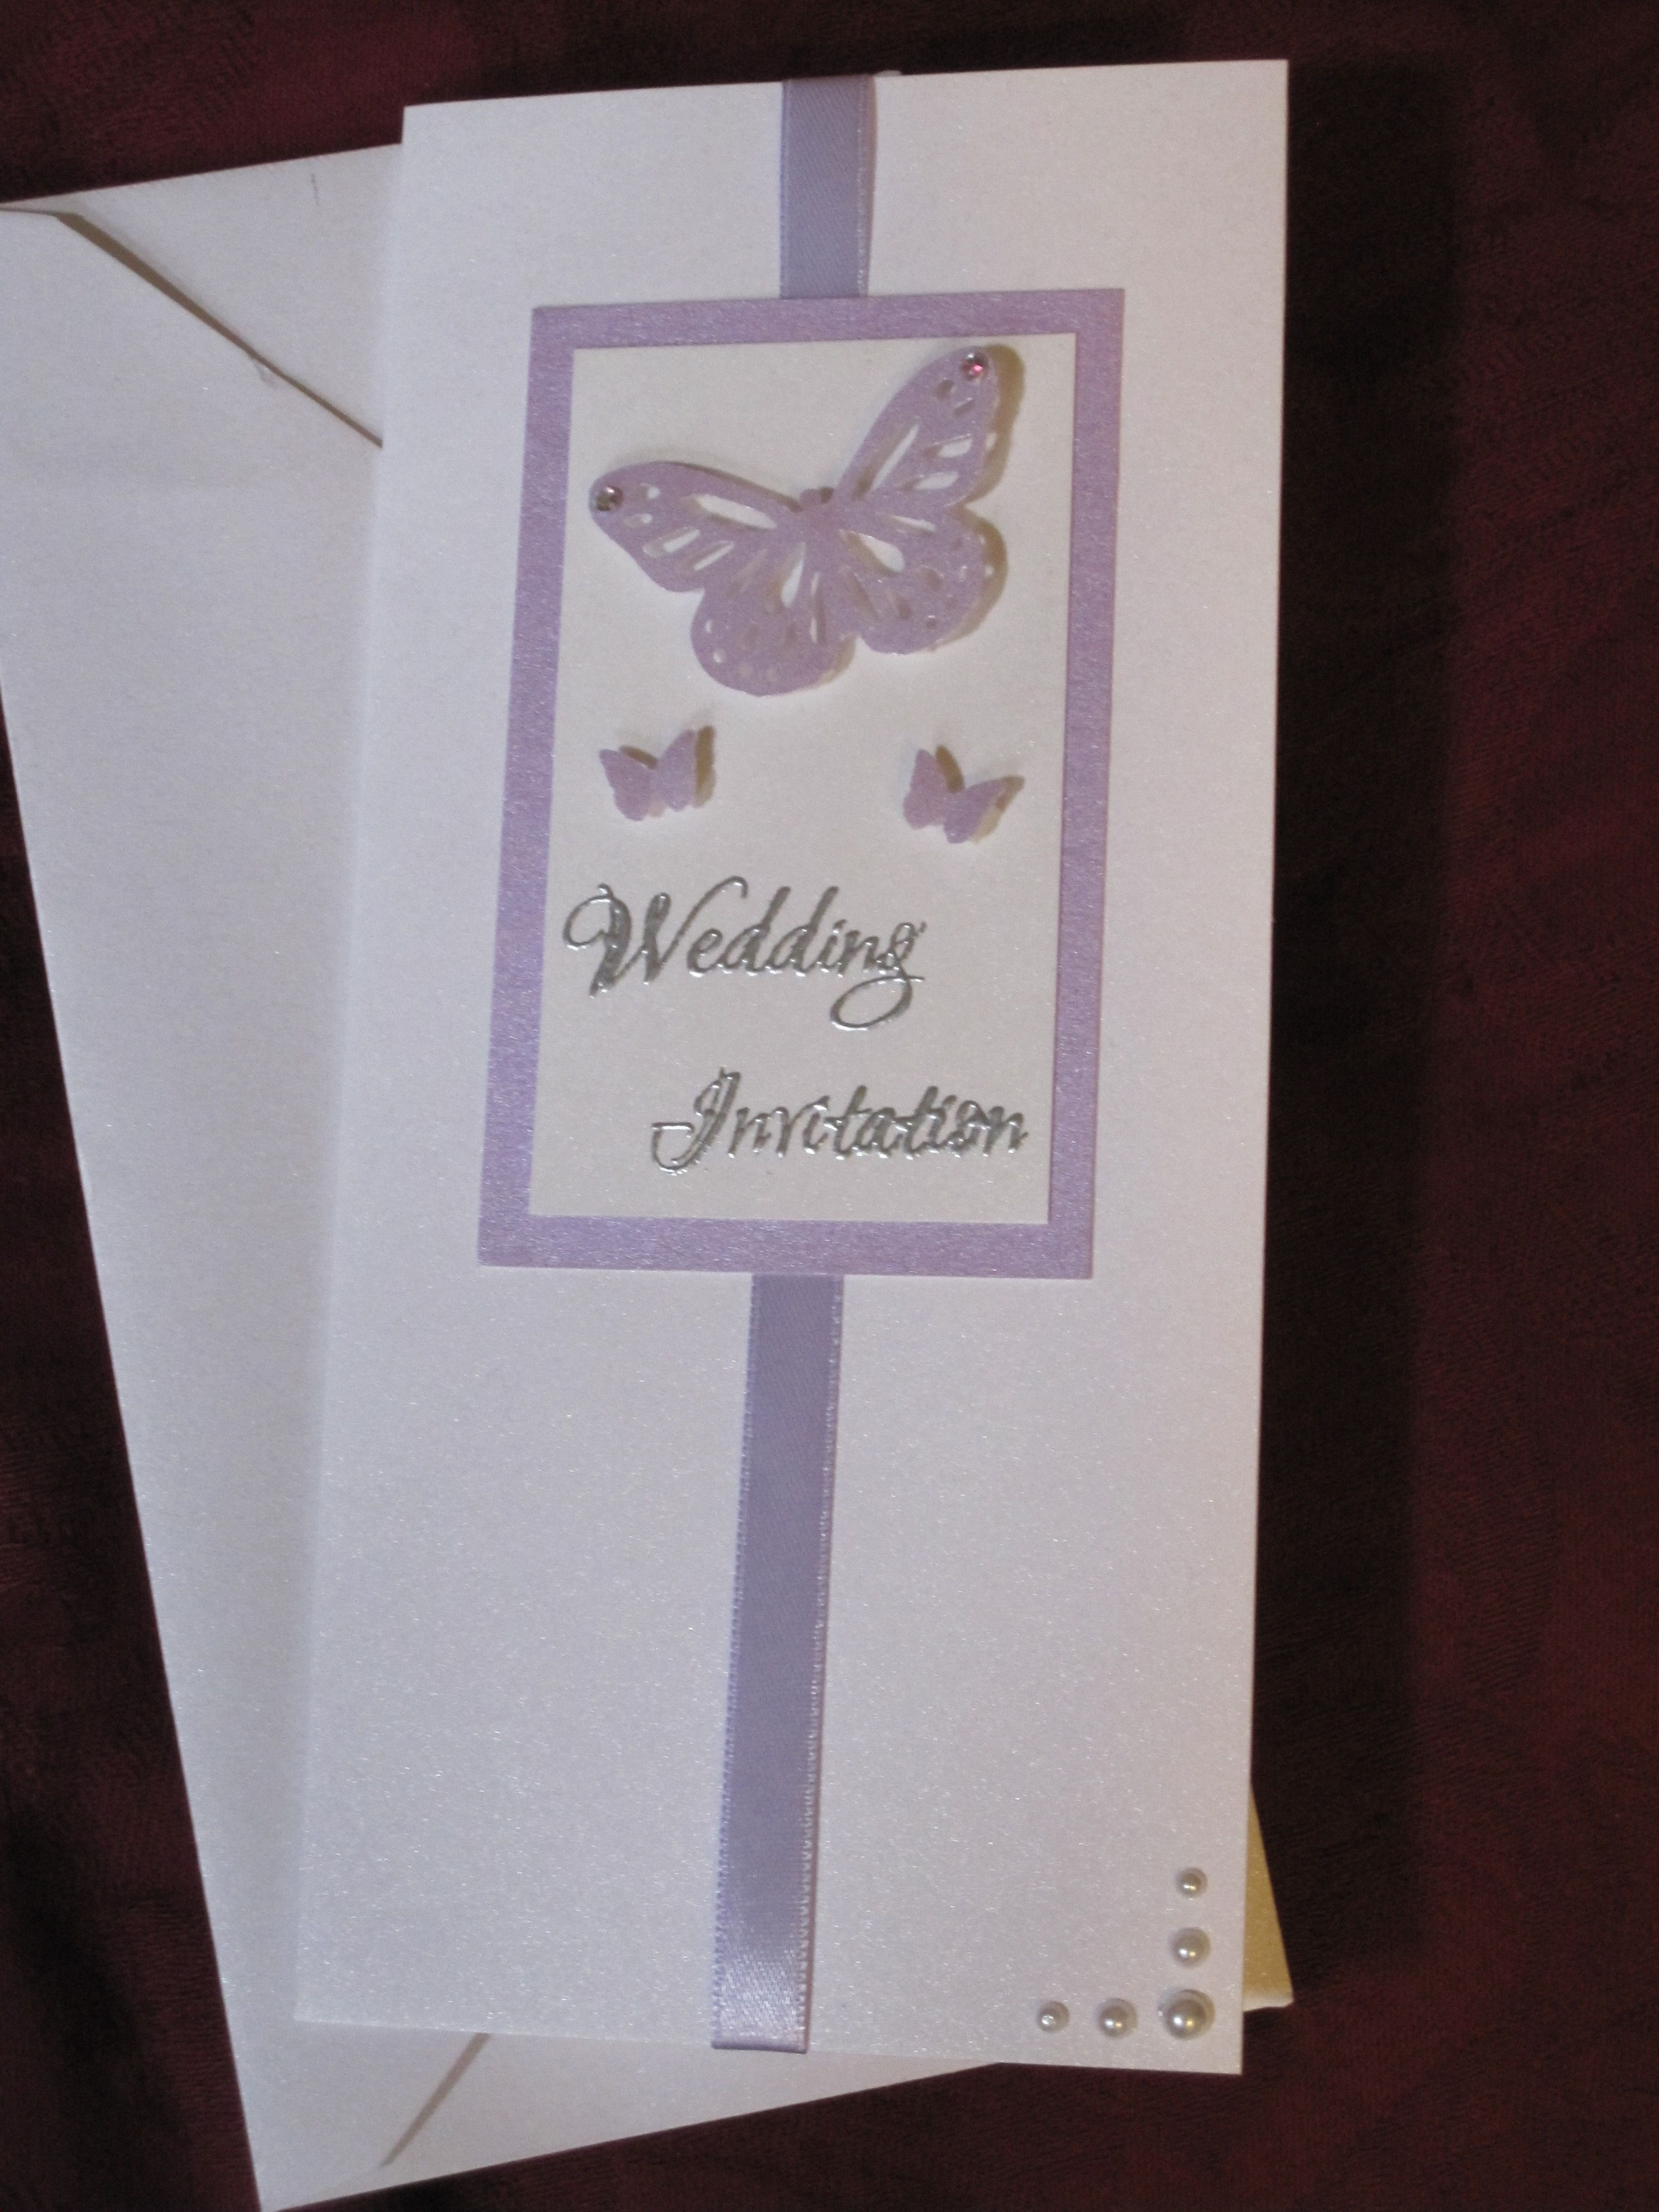 Lilac butterfly wedding invitation | Wedding invitation ideas ...